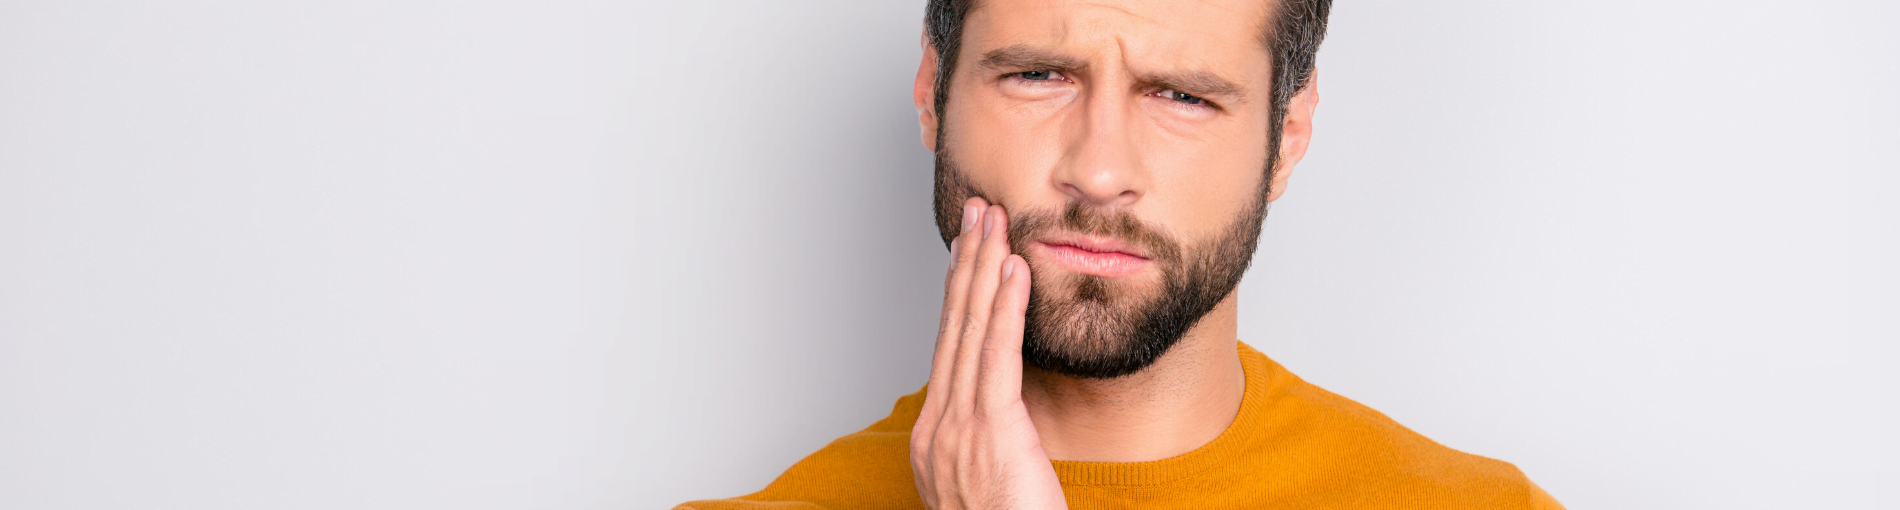 Could your wisdom teeth need to be removed? Know the signs